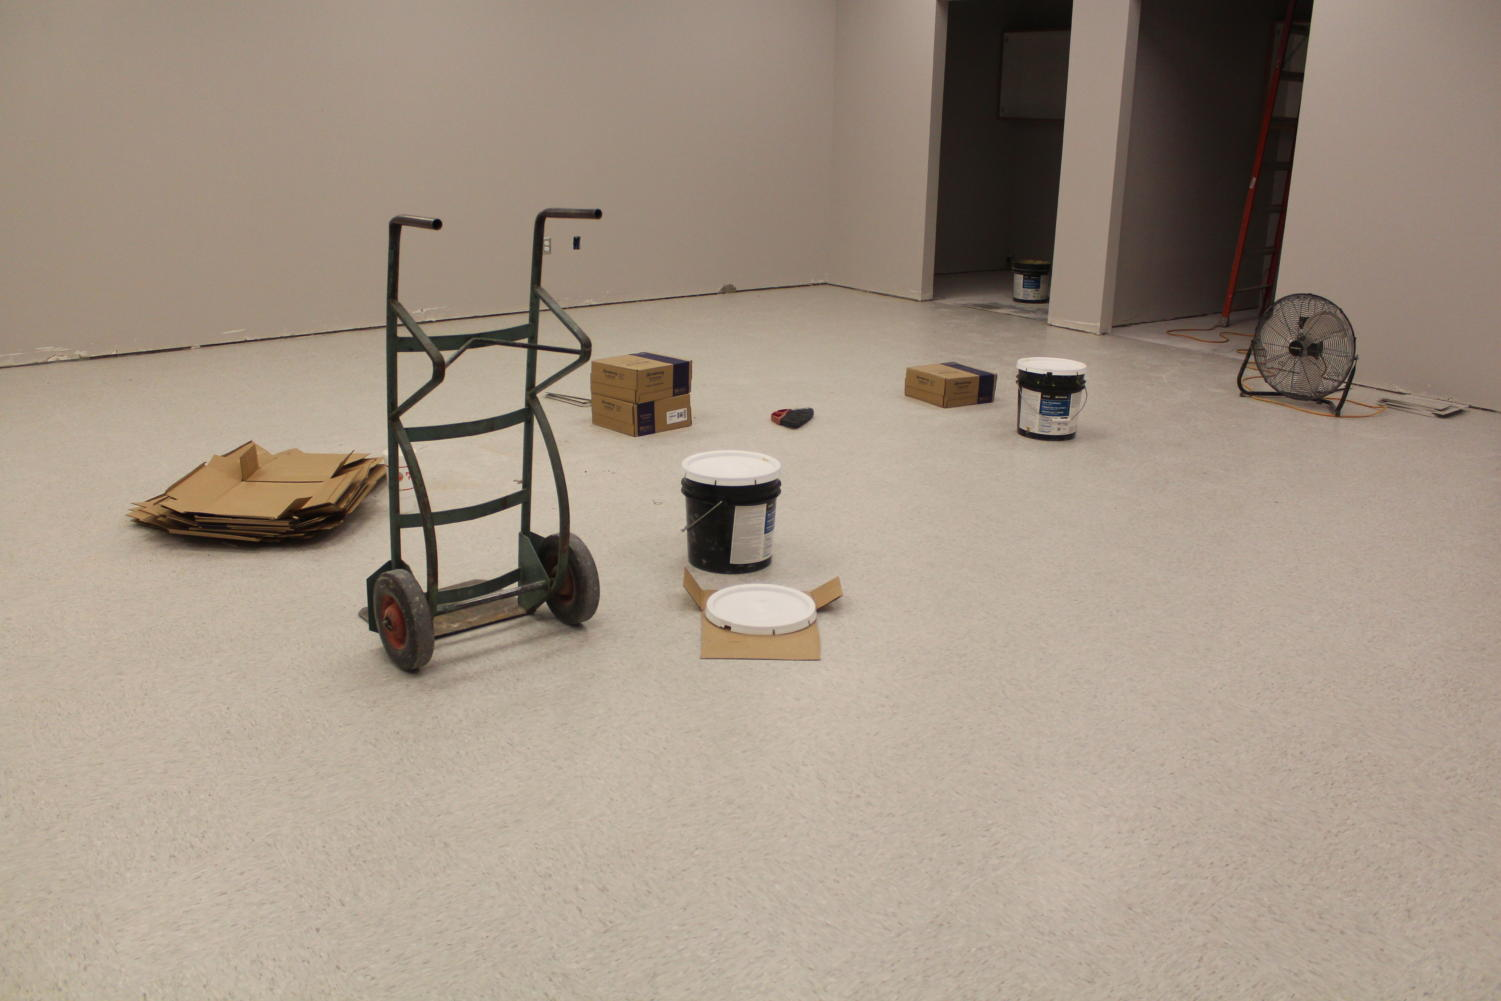 The new journalism room gets the finishing touches. The room received a tile floor, cabinets, outlets, and more.